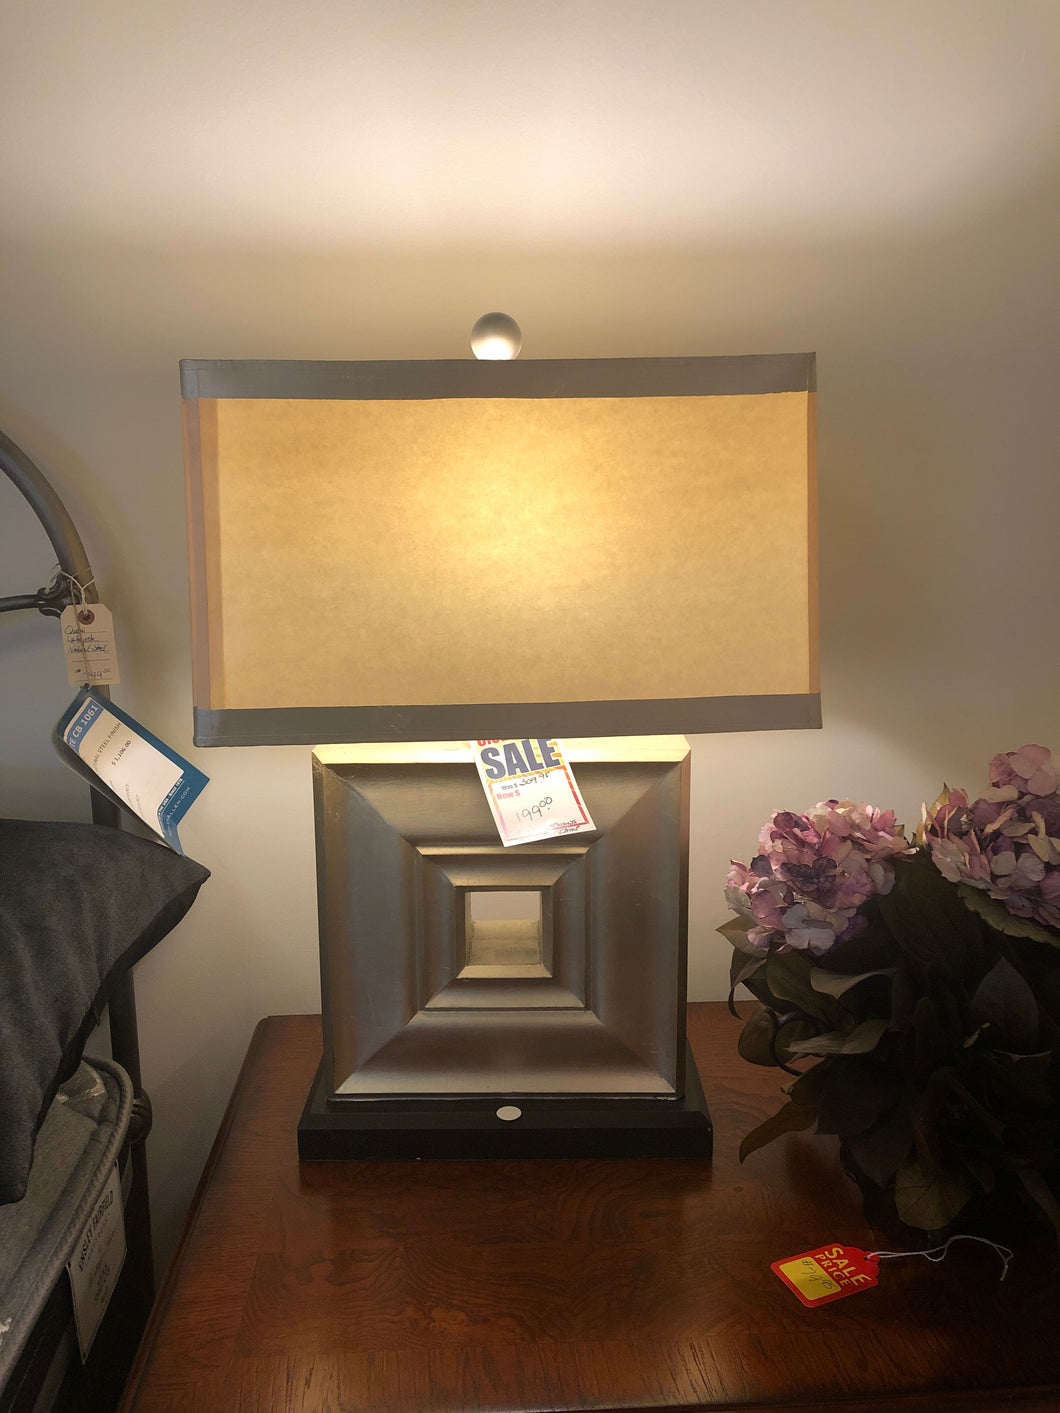 Tomlinson Design Table Lamp - Ensley Fairfield Mattress Co.